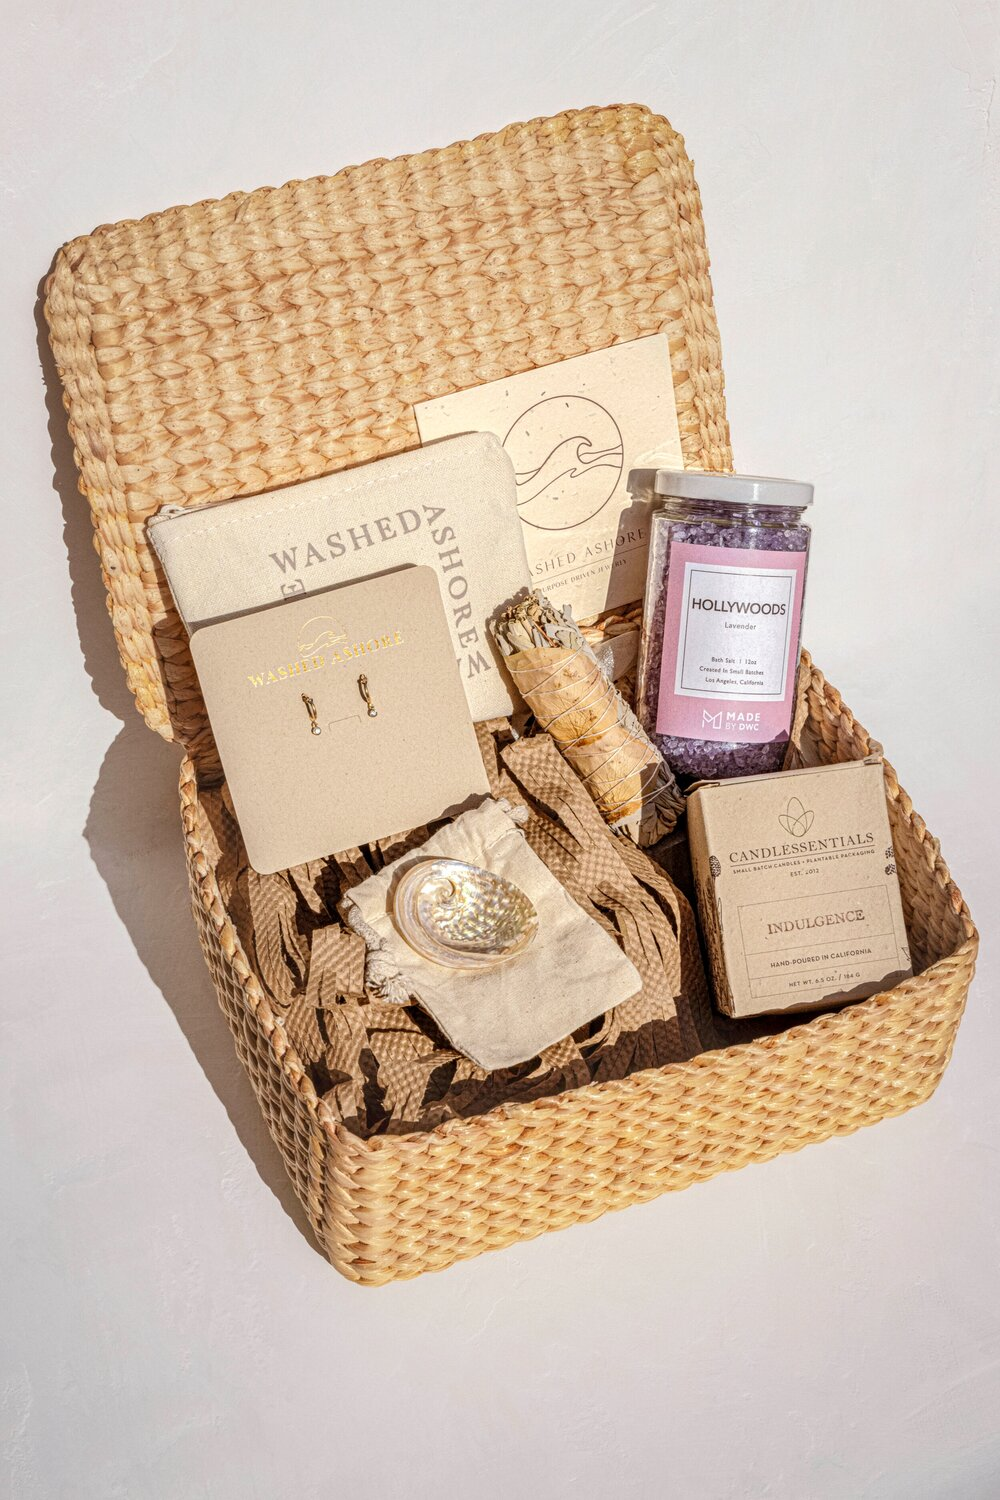 Sustainably Chic   Best Sustainable Fashion Blogs   Sustainable Eco Friendly Ethical Gifts for Her   Washed Ashore   Goddess Box.jpg